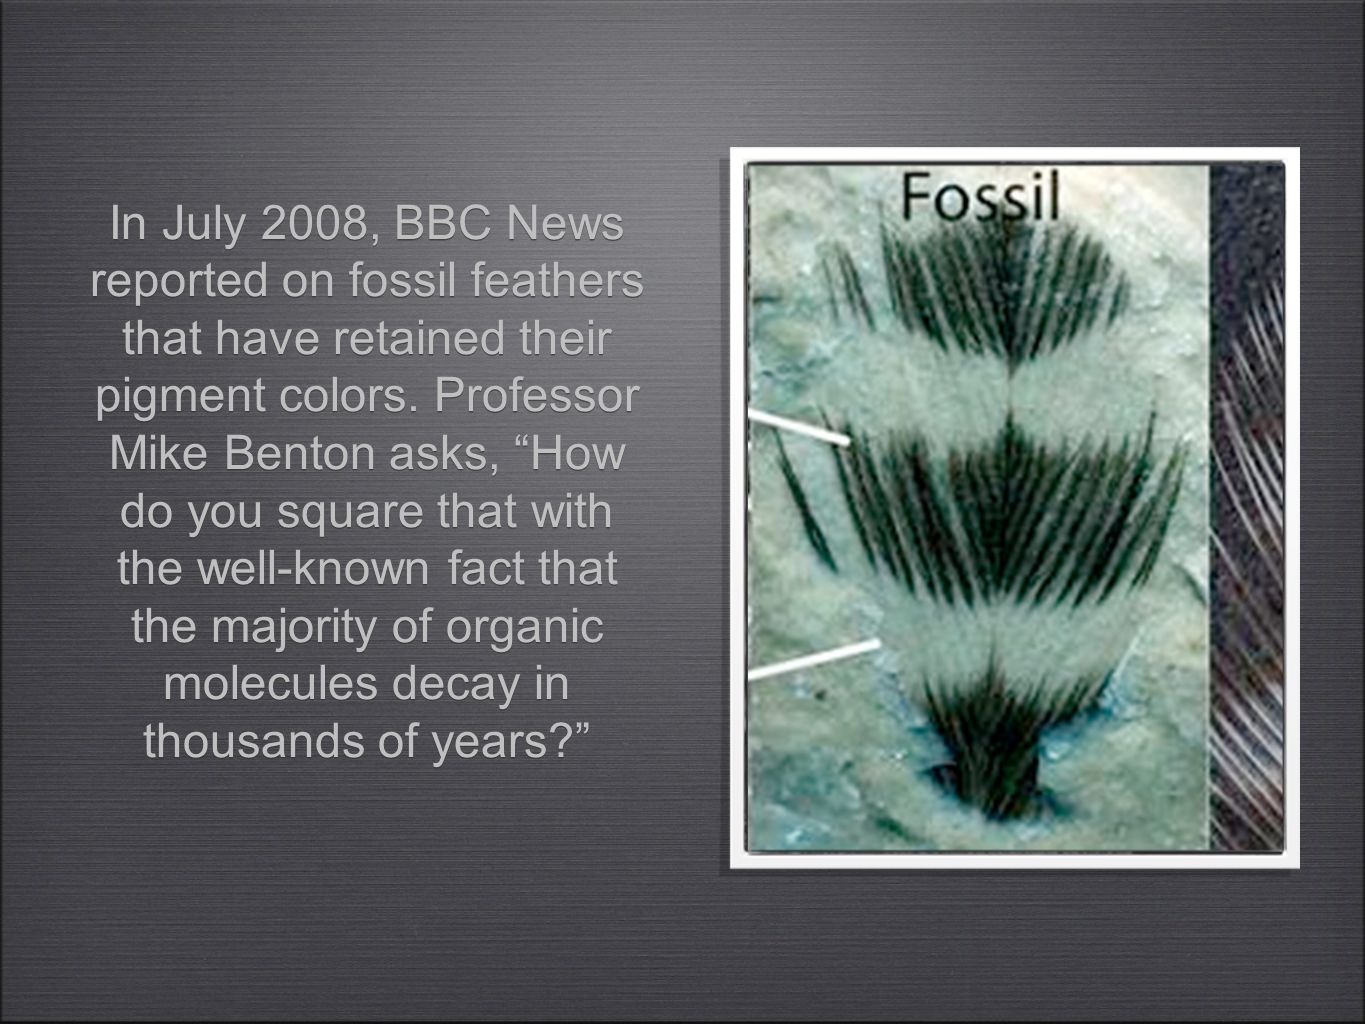 In July 2008, BBC News reported on fossil feathers that have retained their pigment colors.